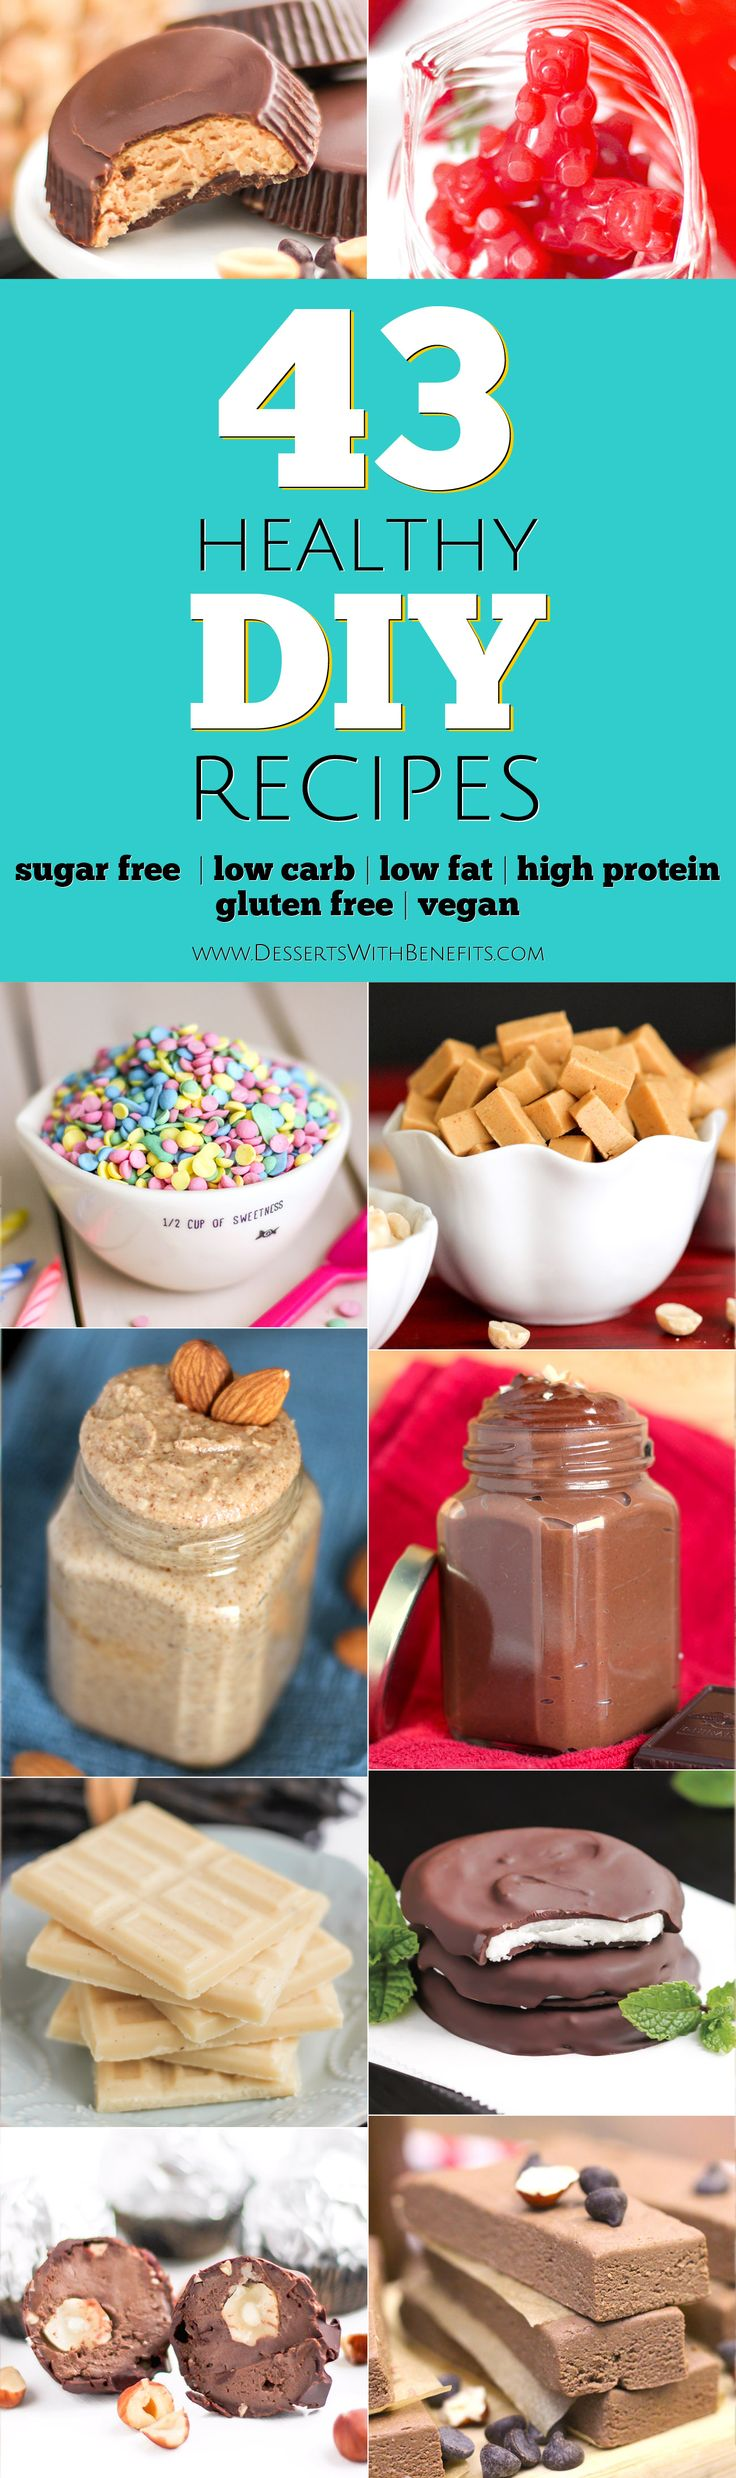 Here are 43 Healthy DIY Recipes that taste just as good as (or better than!) the originals.  If you've ever wanted to make your favorite foods at home, and make them healthy while you're at it, you're in the right place.  This post is written just for YOU!  Here we've got DIY Nut Butters, DIY Rainbow Sprinkles, DIY Nutella, DIY Gummy Bears, DIY Candy Bars (yes, seriously), DIY Protein Bars, and way more.